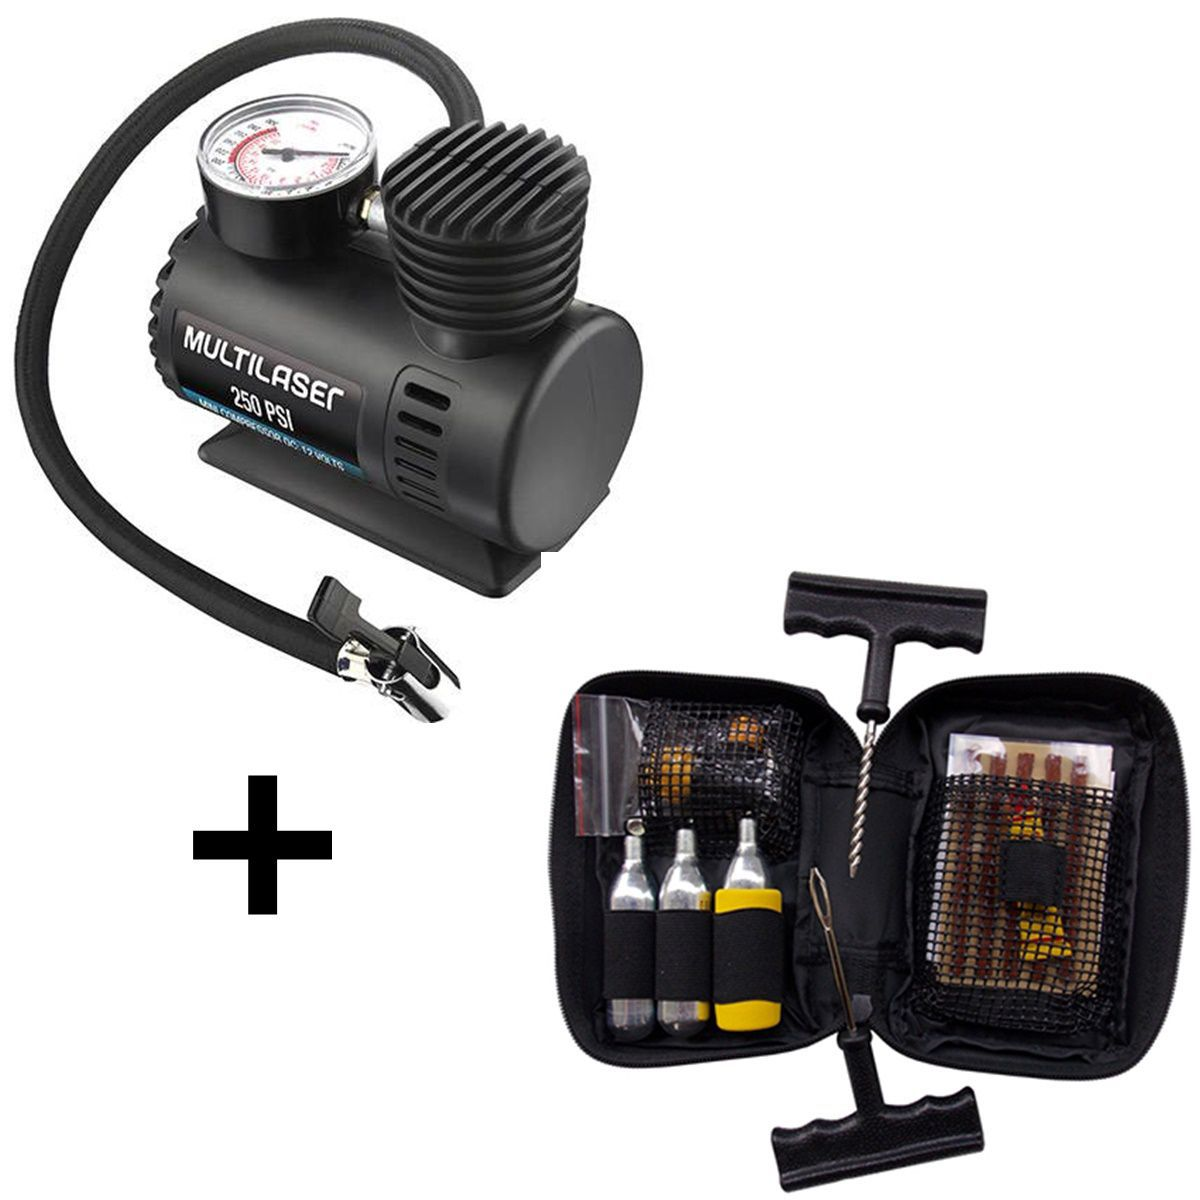 Kit Viagem Compressor Multilaser Com Kit Remendo Pneu Bering